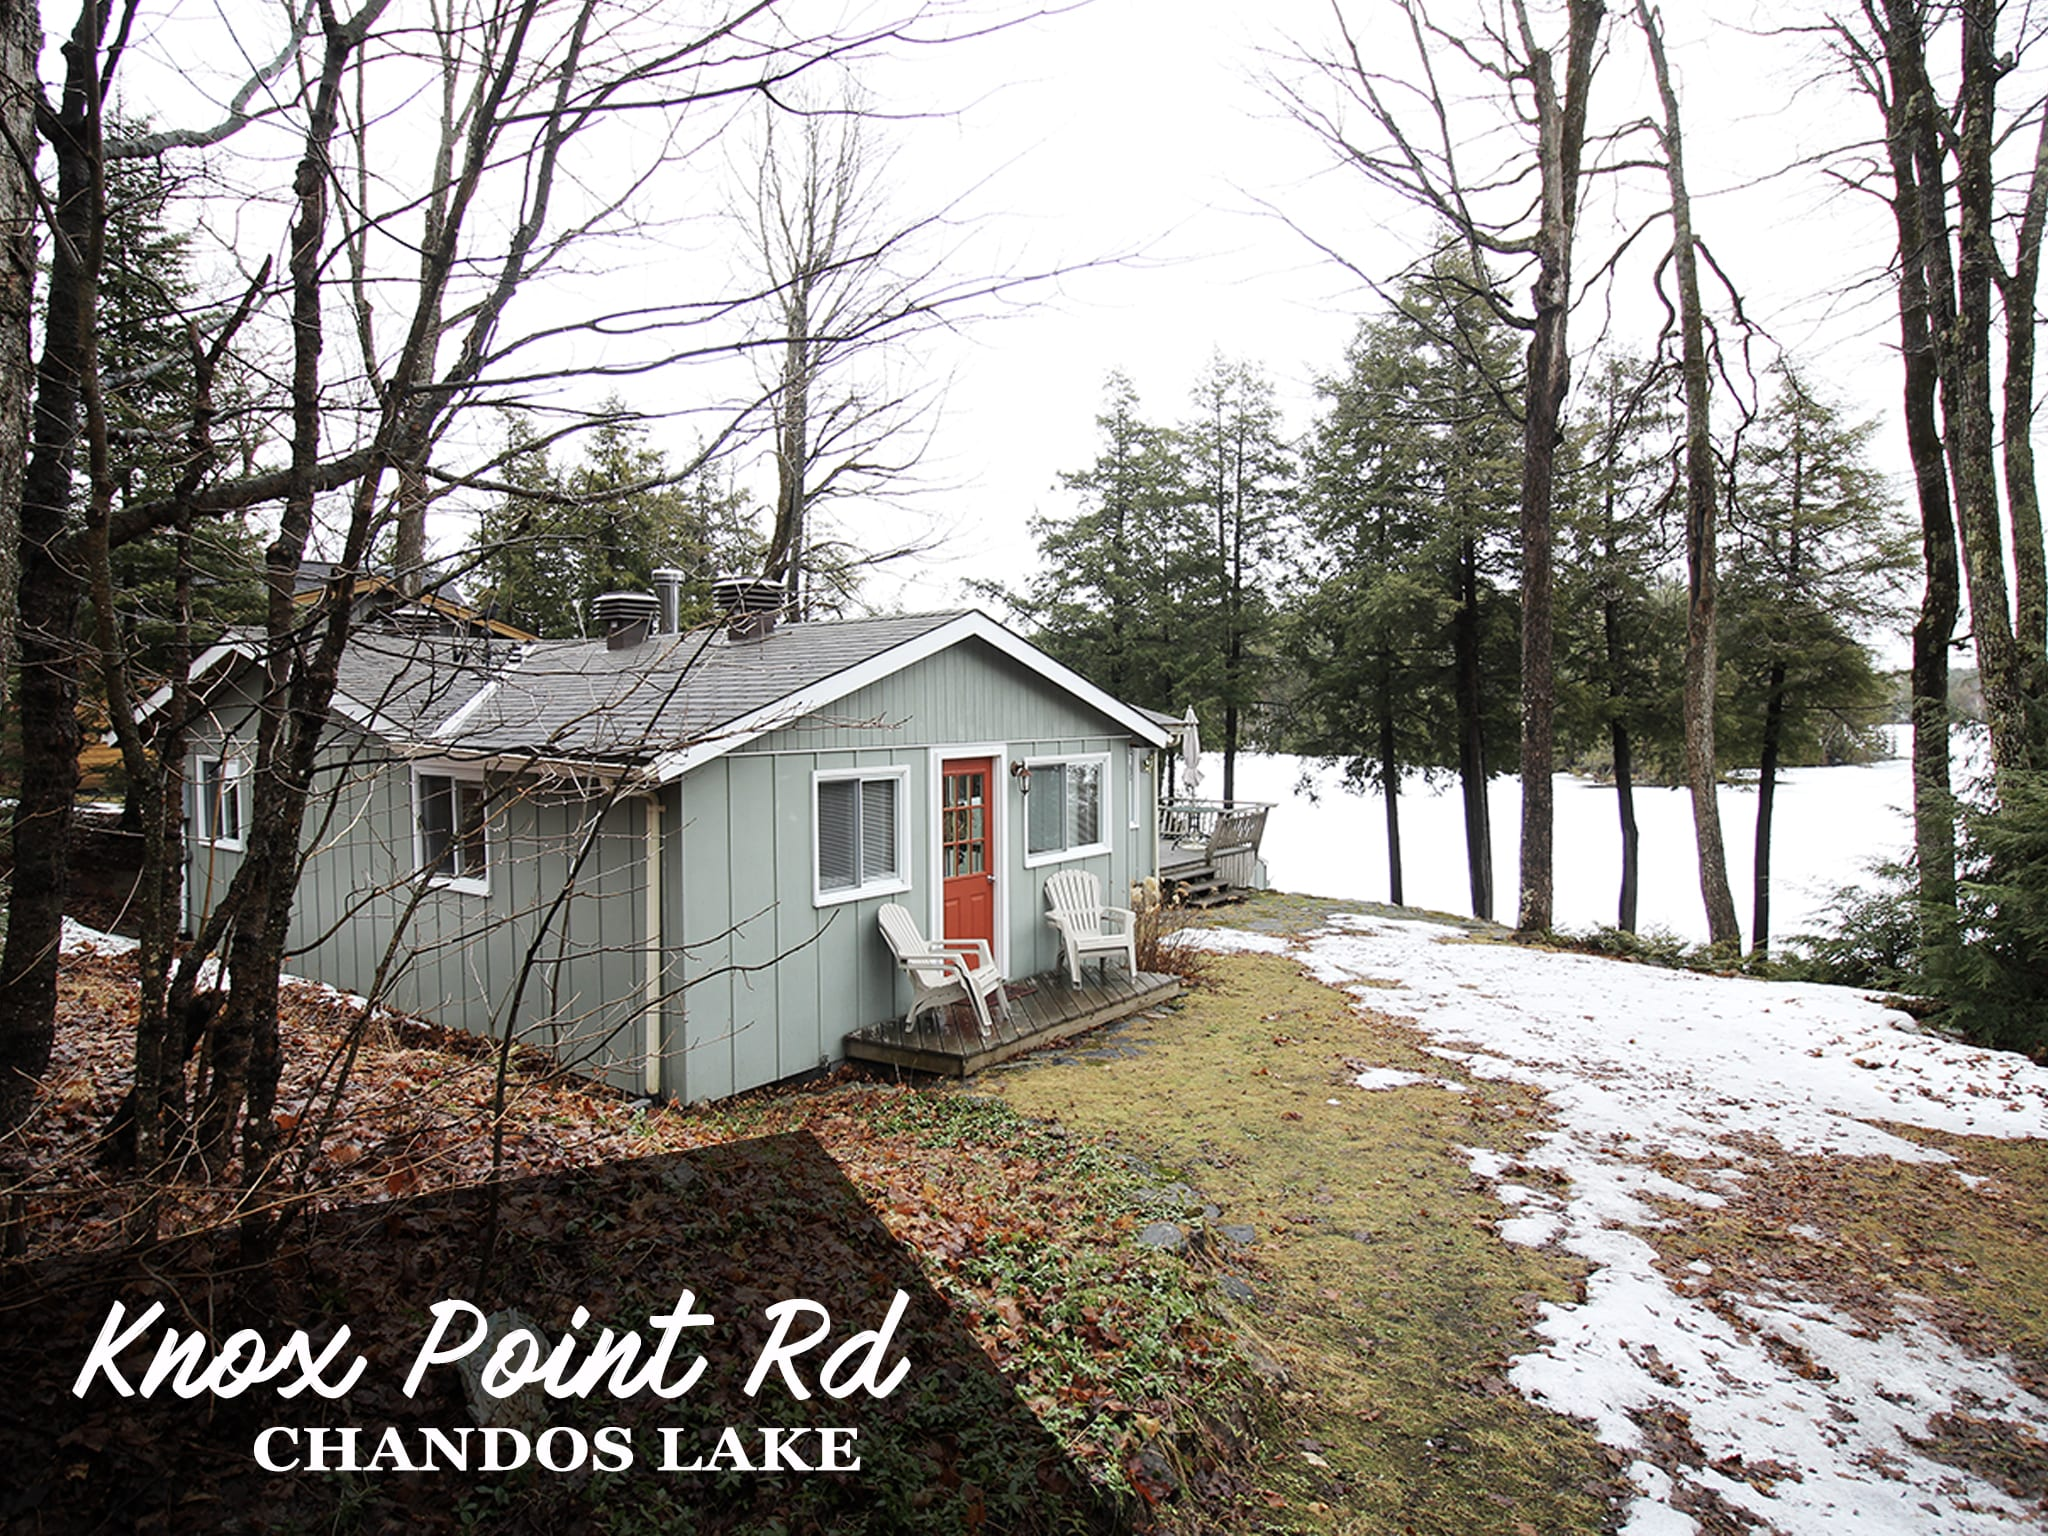 Chandos Lake Cottage for Sale   Cottages for Sale near Aspley Ontario